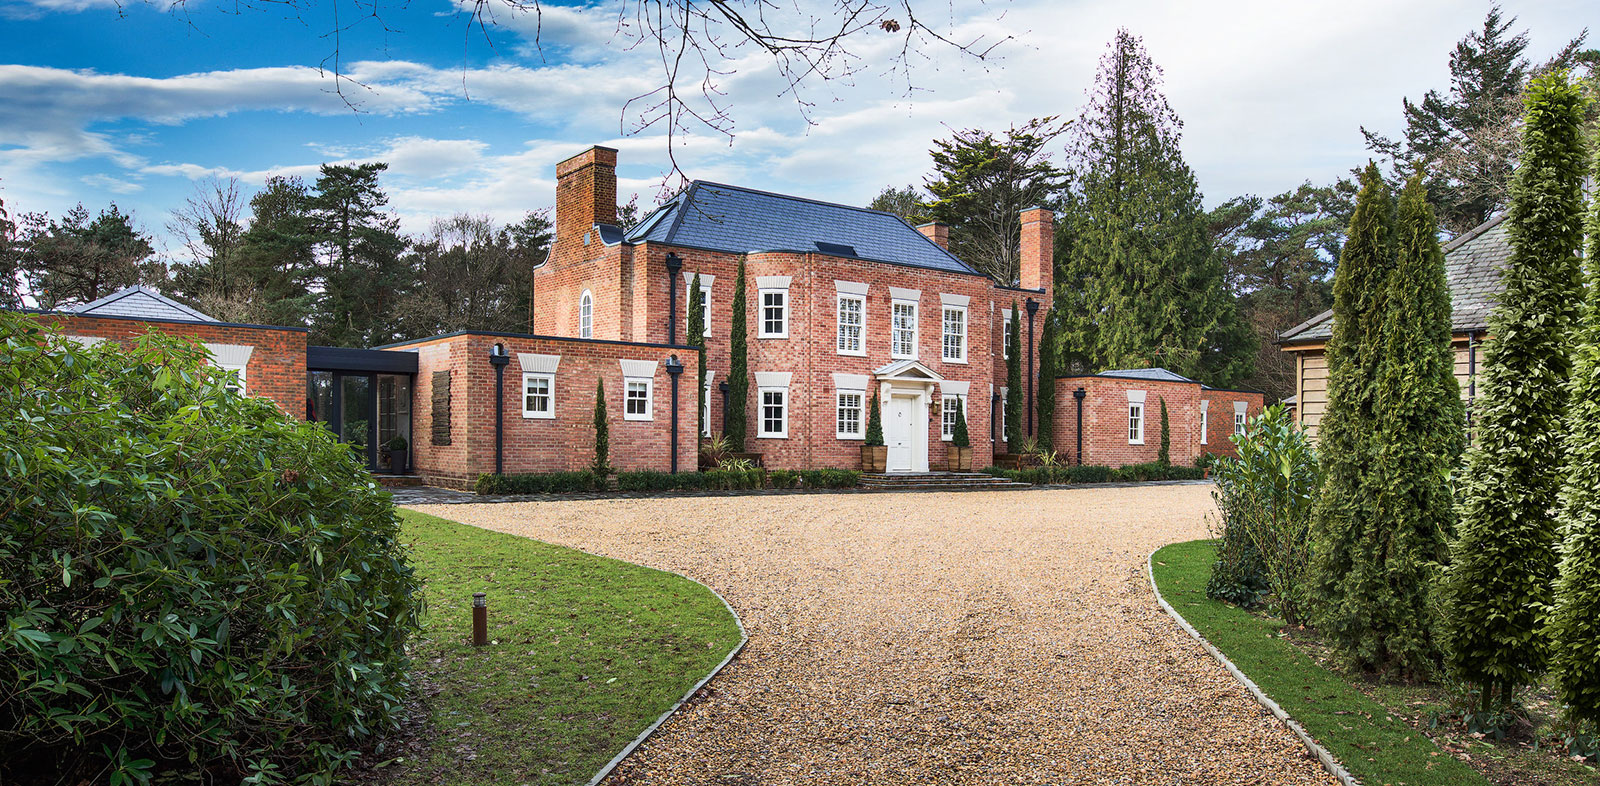 New-Forest-Manor-House-DG-Morgan-4